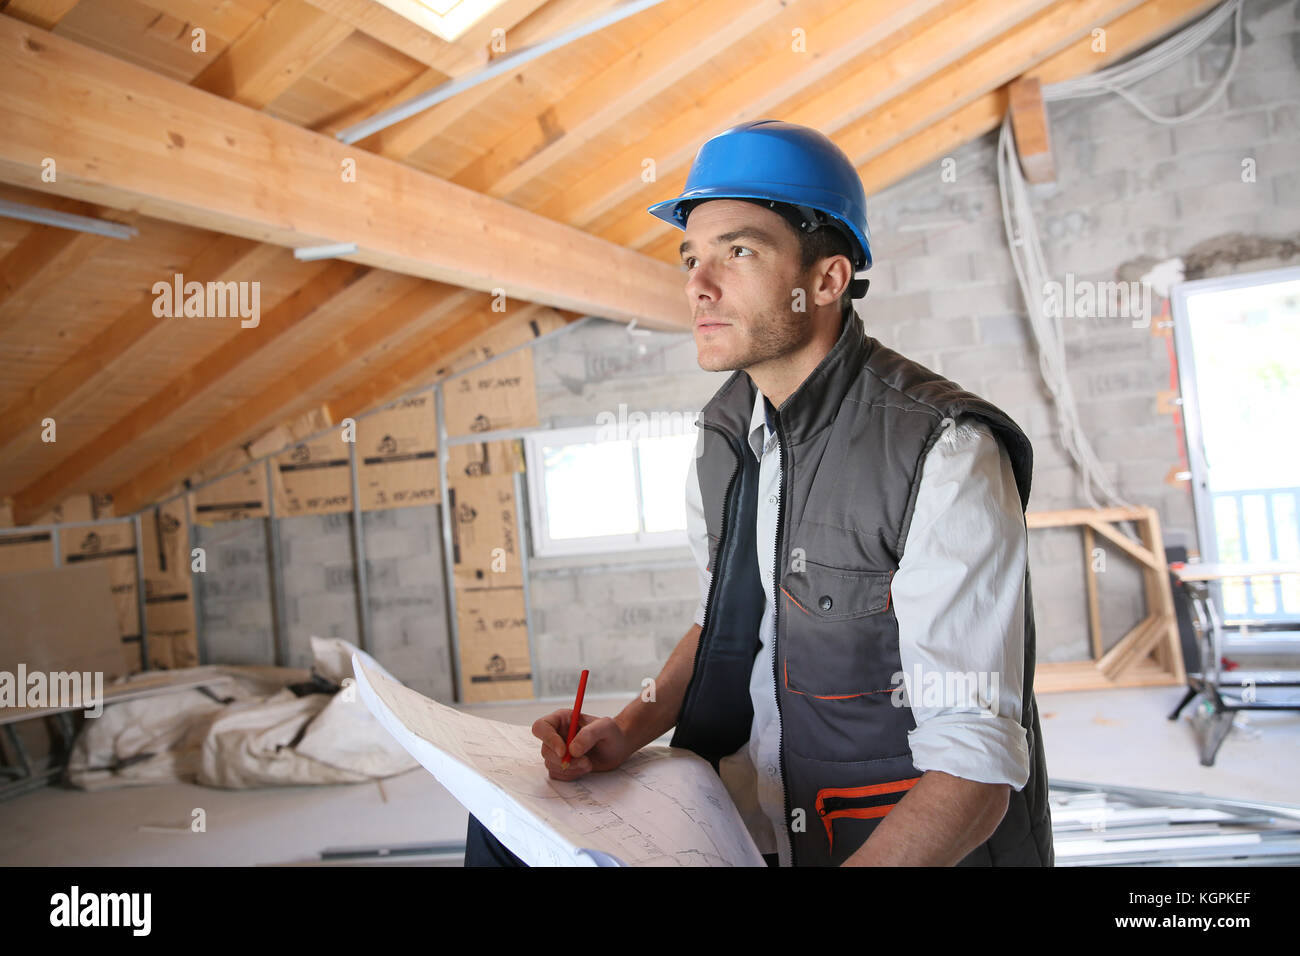 Construction manager on site reading blueprint - Stock Image